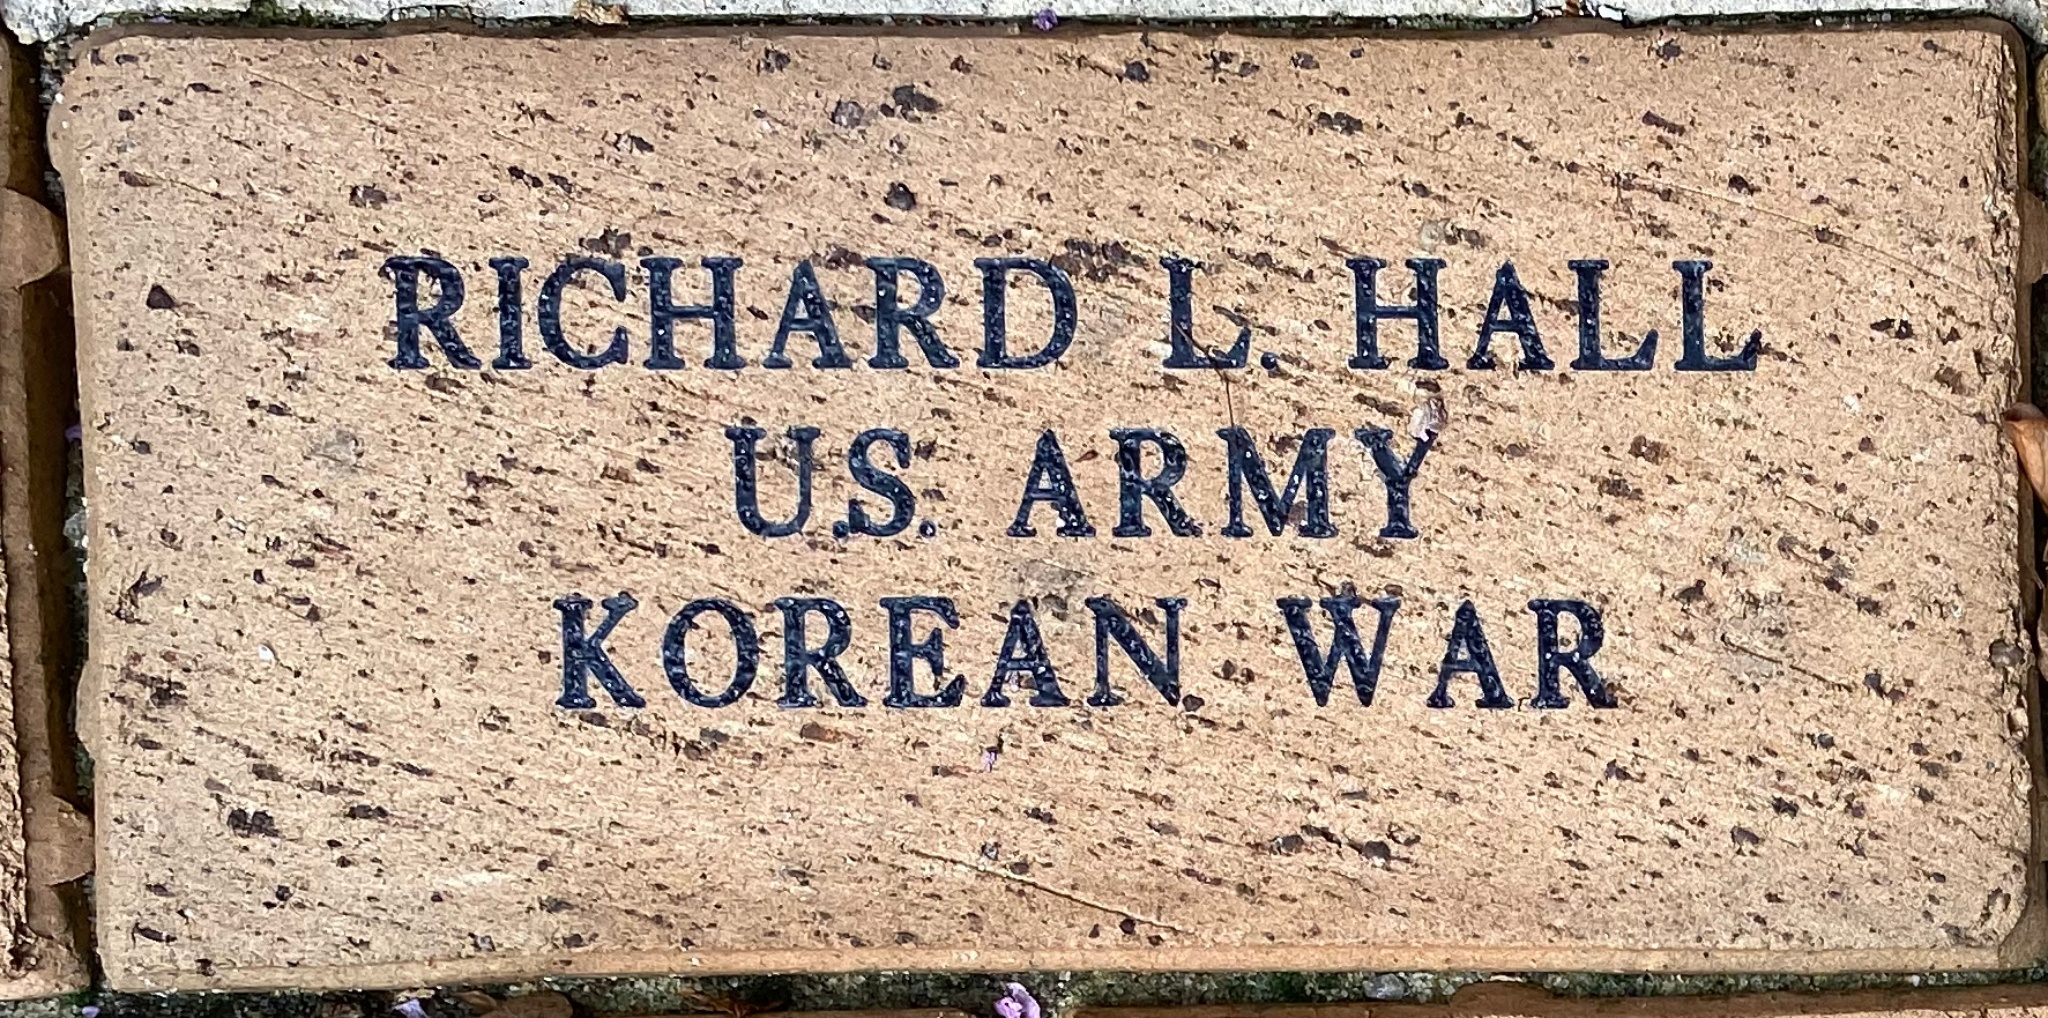 RICHARD L. HALL U.S. ARMY KOREAN WAR